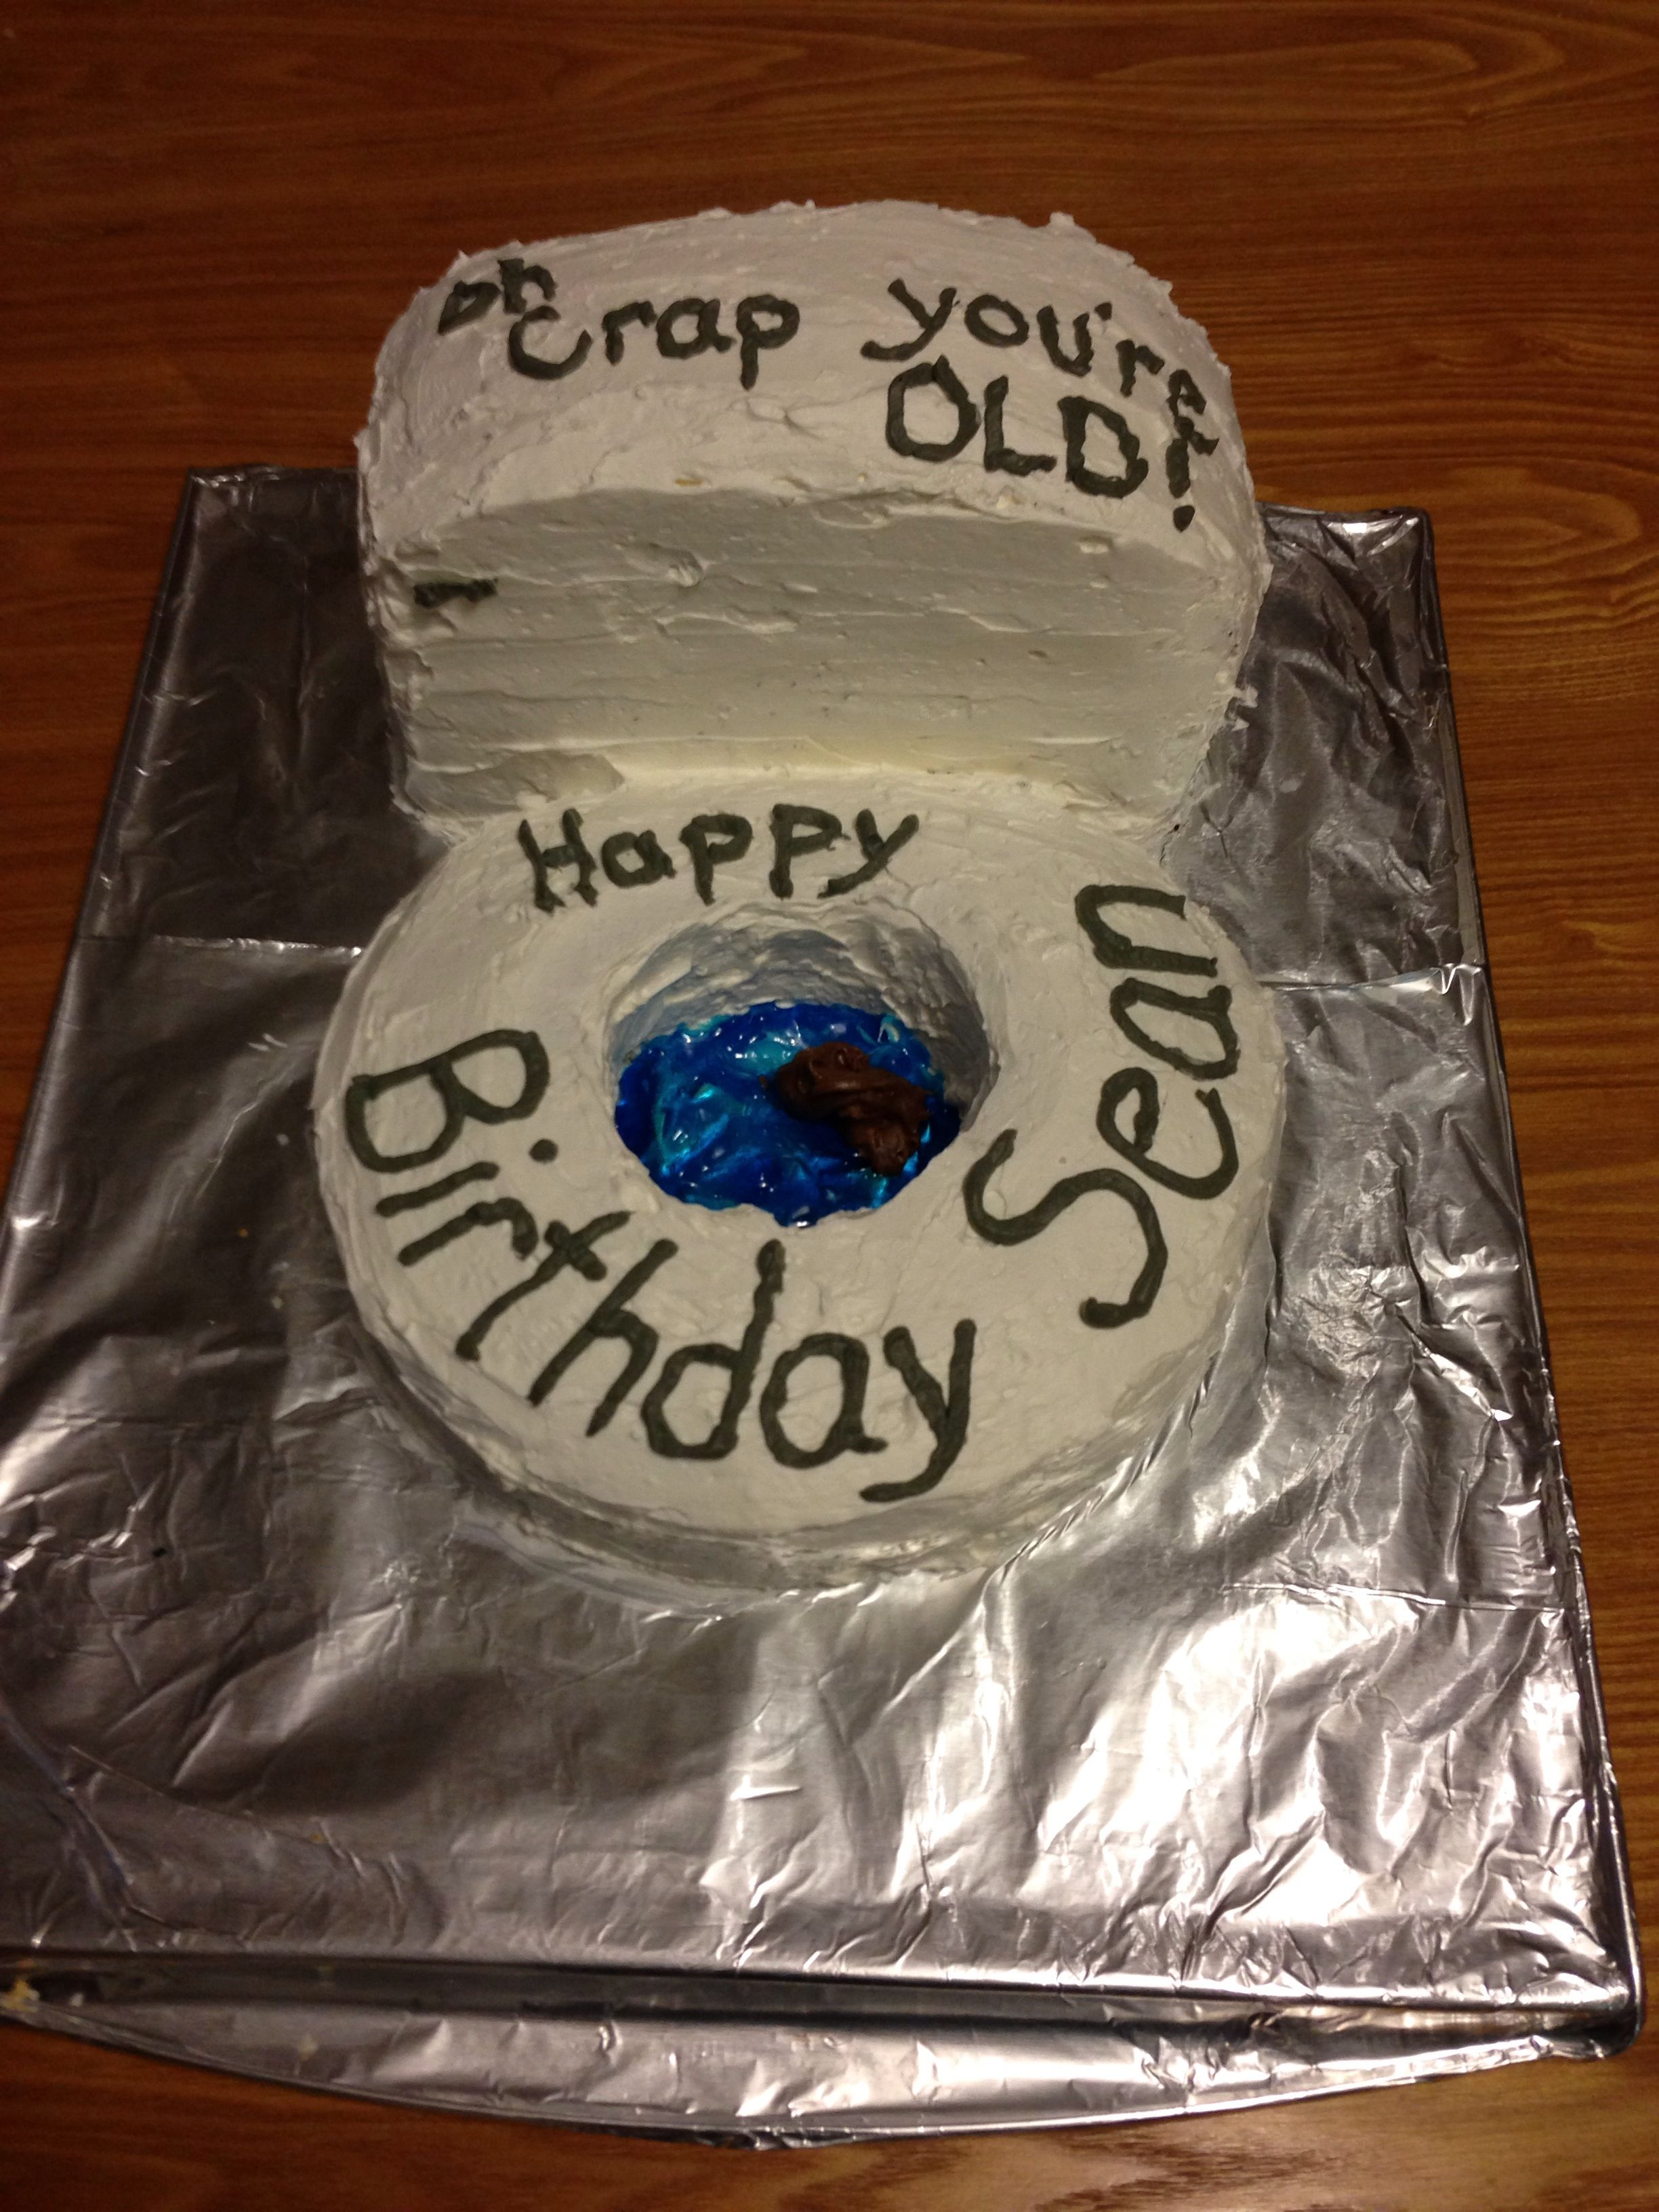 Fun Birthday Cake Idea 40th 50th 60th I Uses 1 Round Pan Square Cut In Half Stacked Also Used Melted Chocolate For The Final Touch